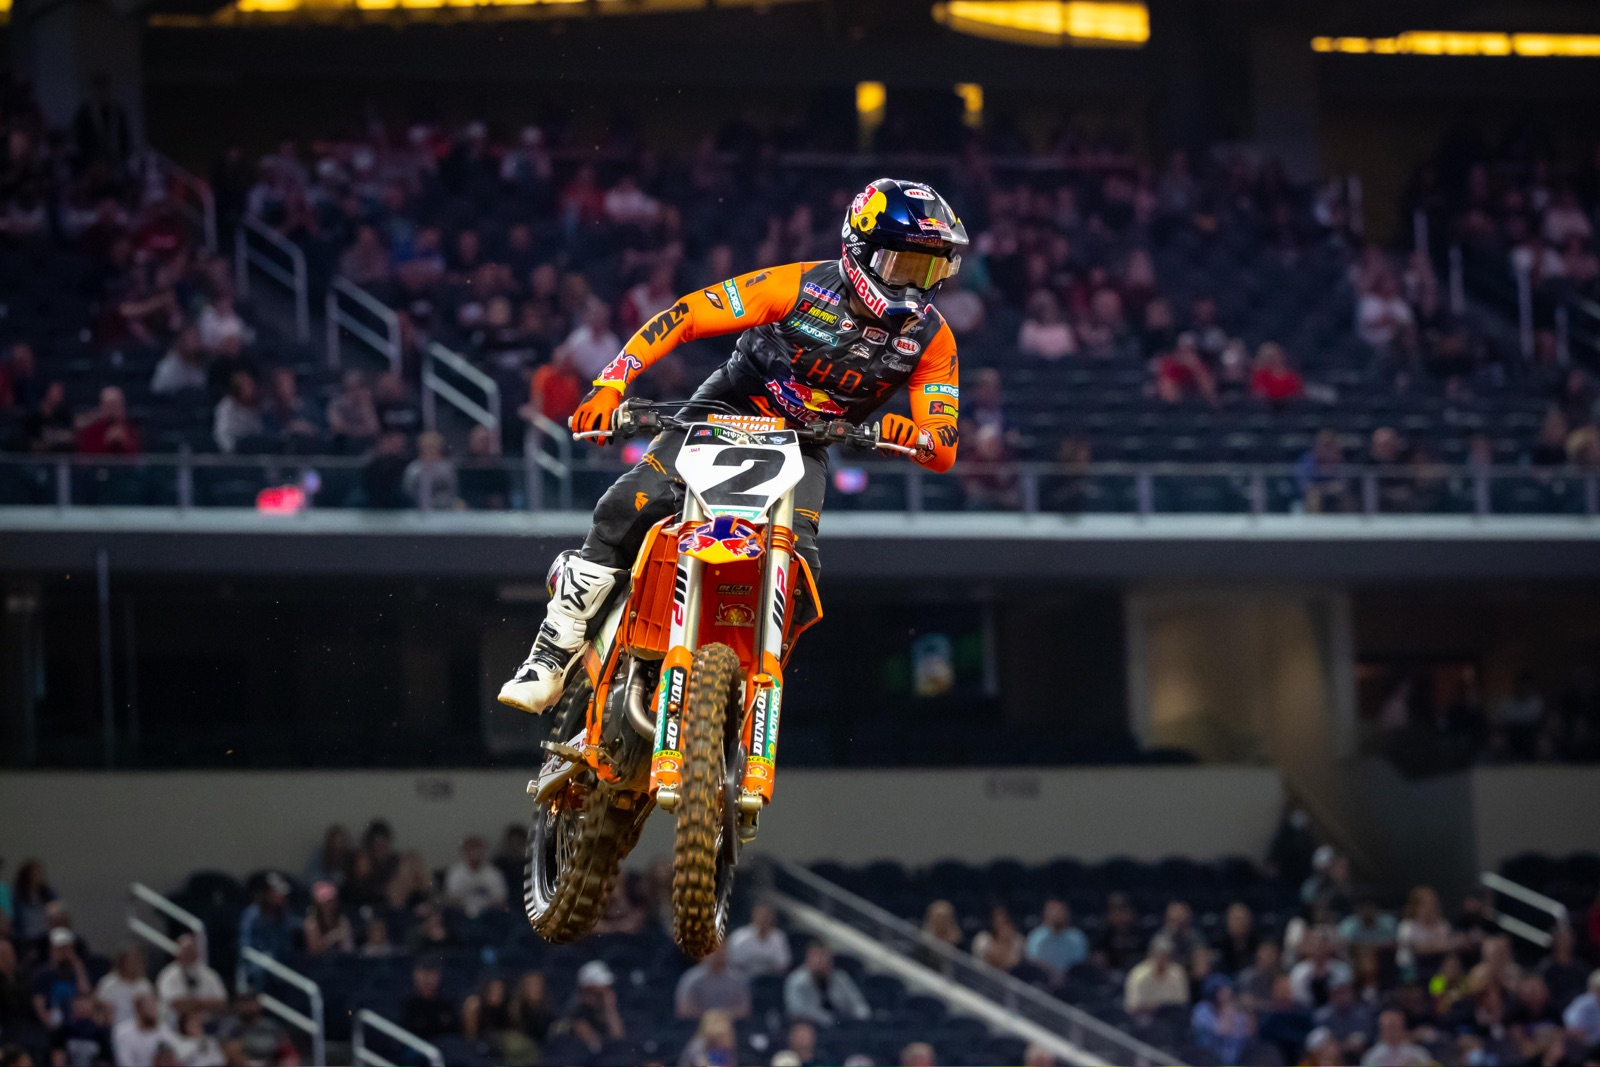 Cooper Webb returned to the top of the podium